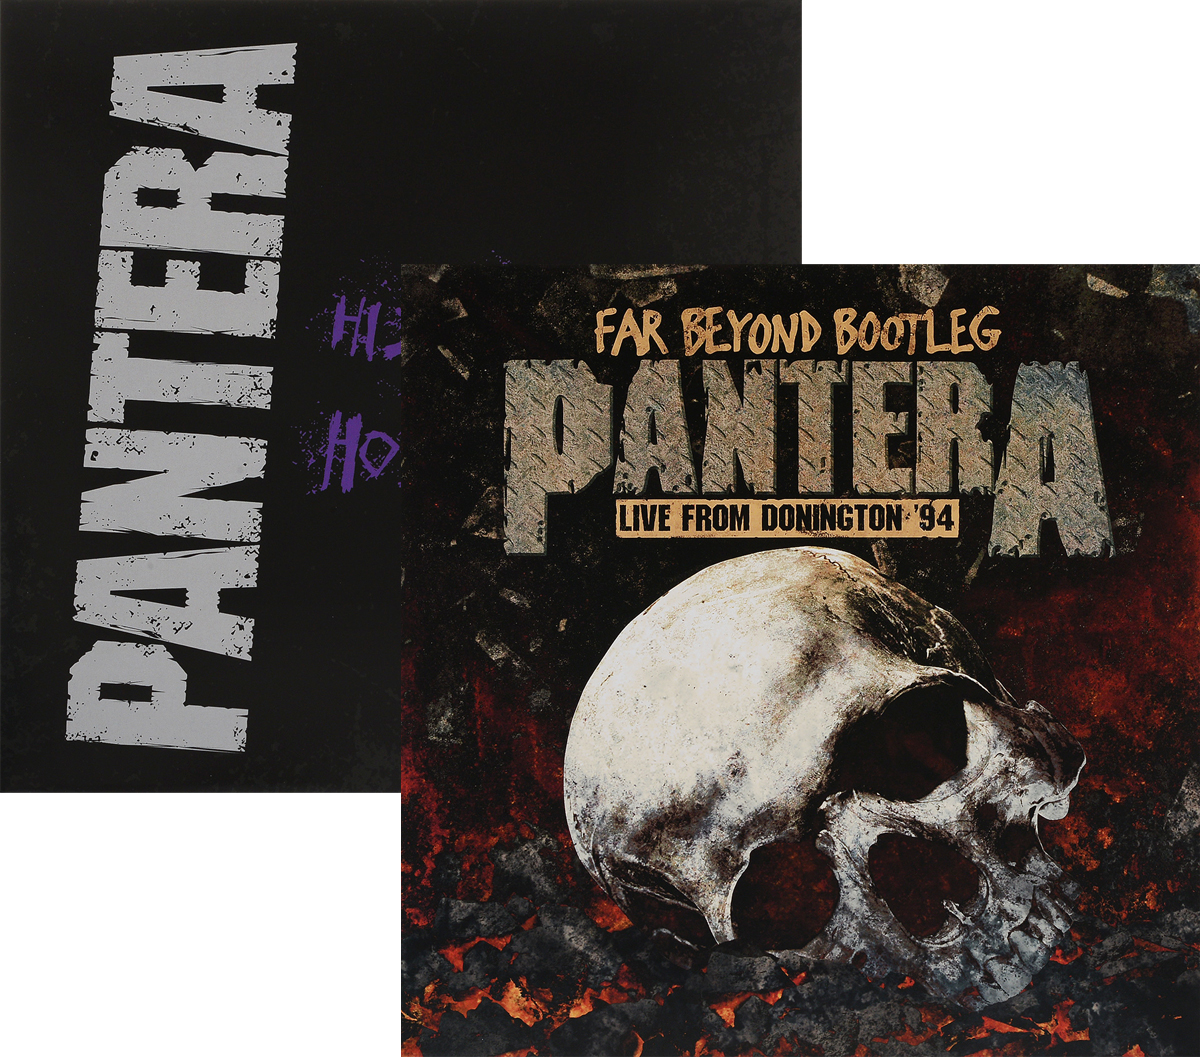 Pantera Pantera. History Of Hostility / Far Beyond Bootleg - Live From Donington '94 (2 LP) худи print bar pantera cowboys from hell